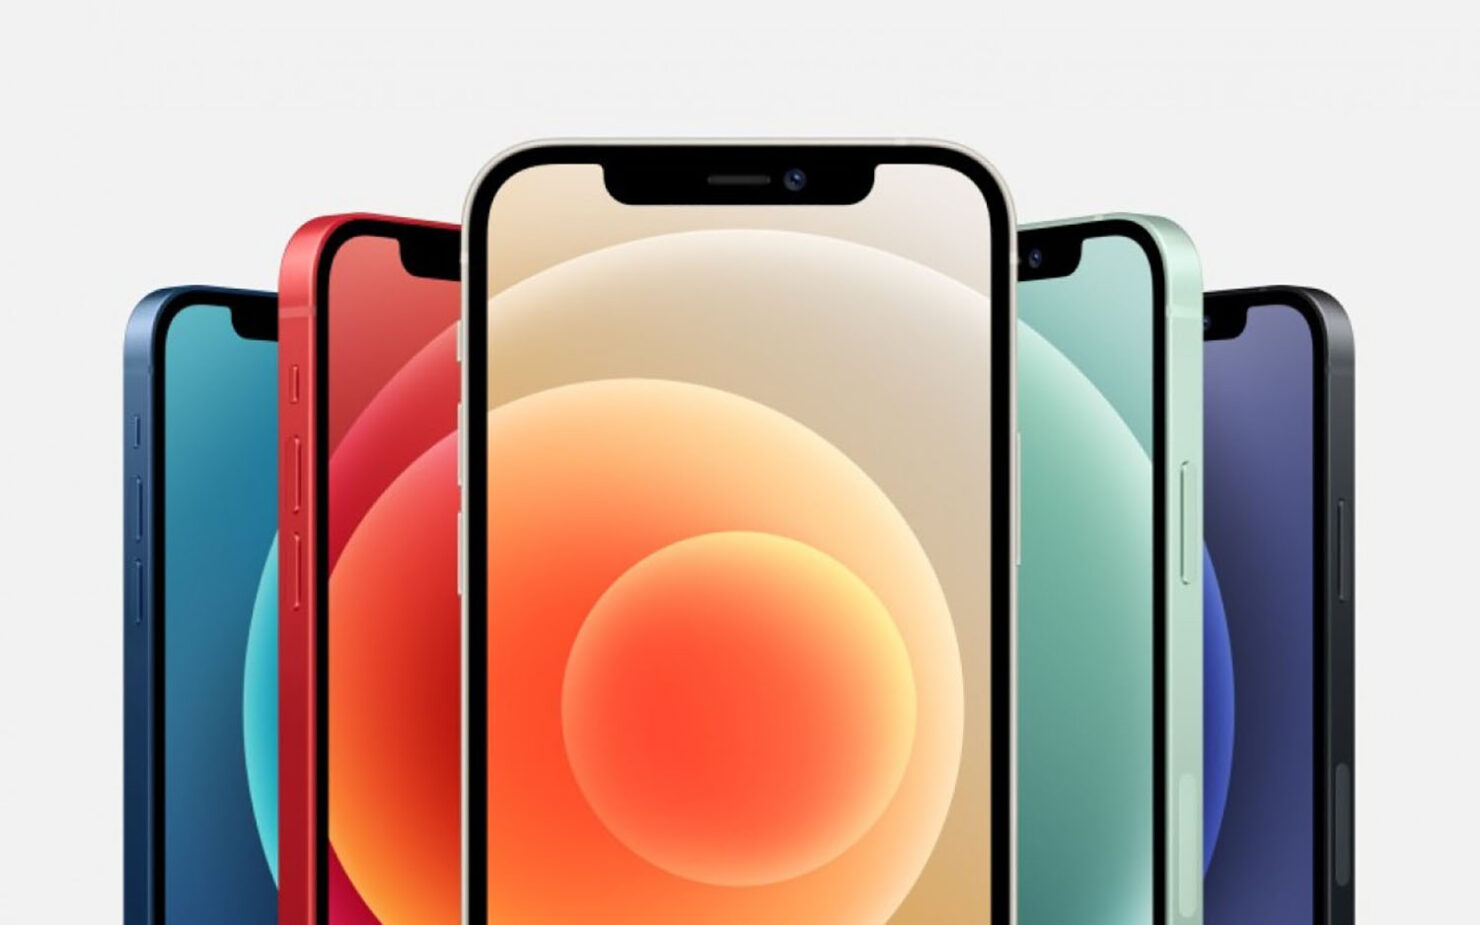 Apple's iPhone 12 Series Once Again Dominated Q1, 2021 in Both Revenue and Volume Share, According to Fresh Analysis